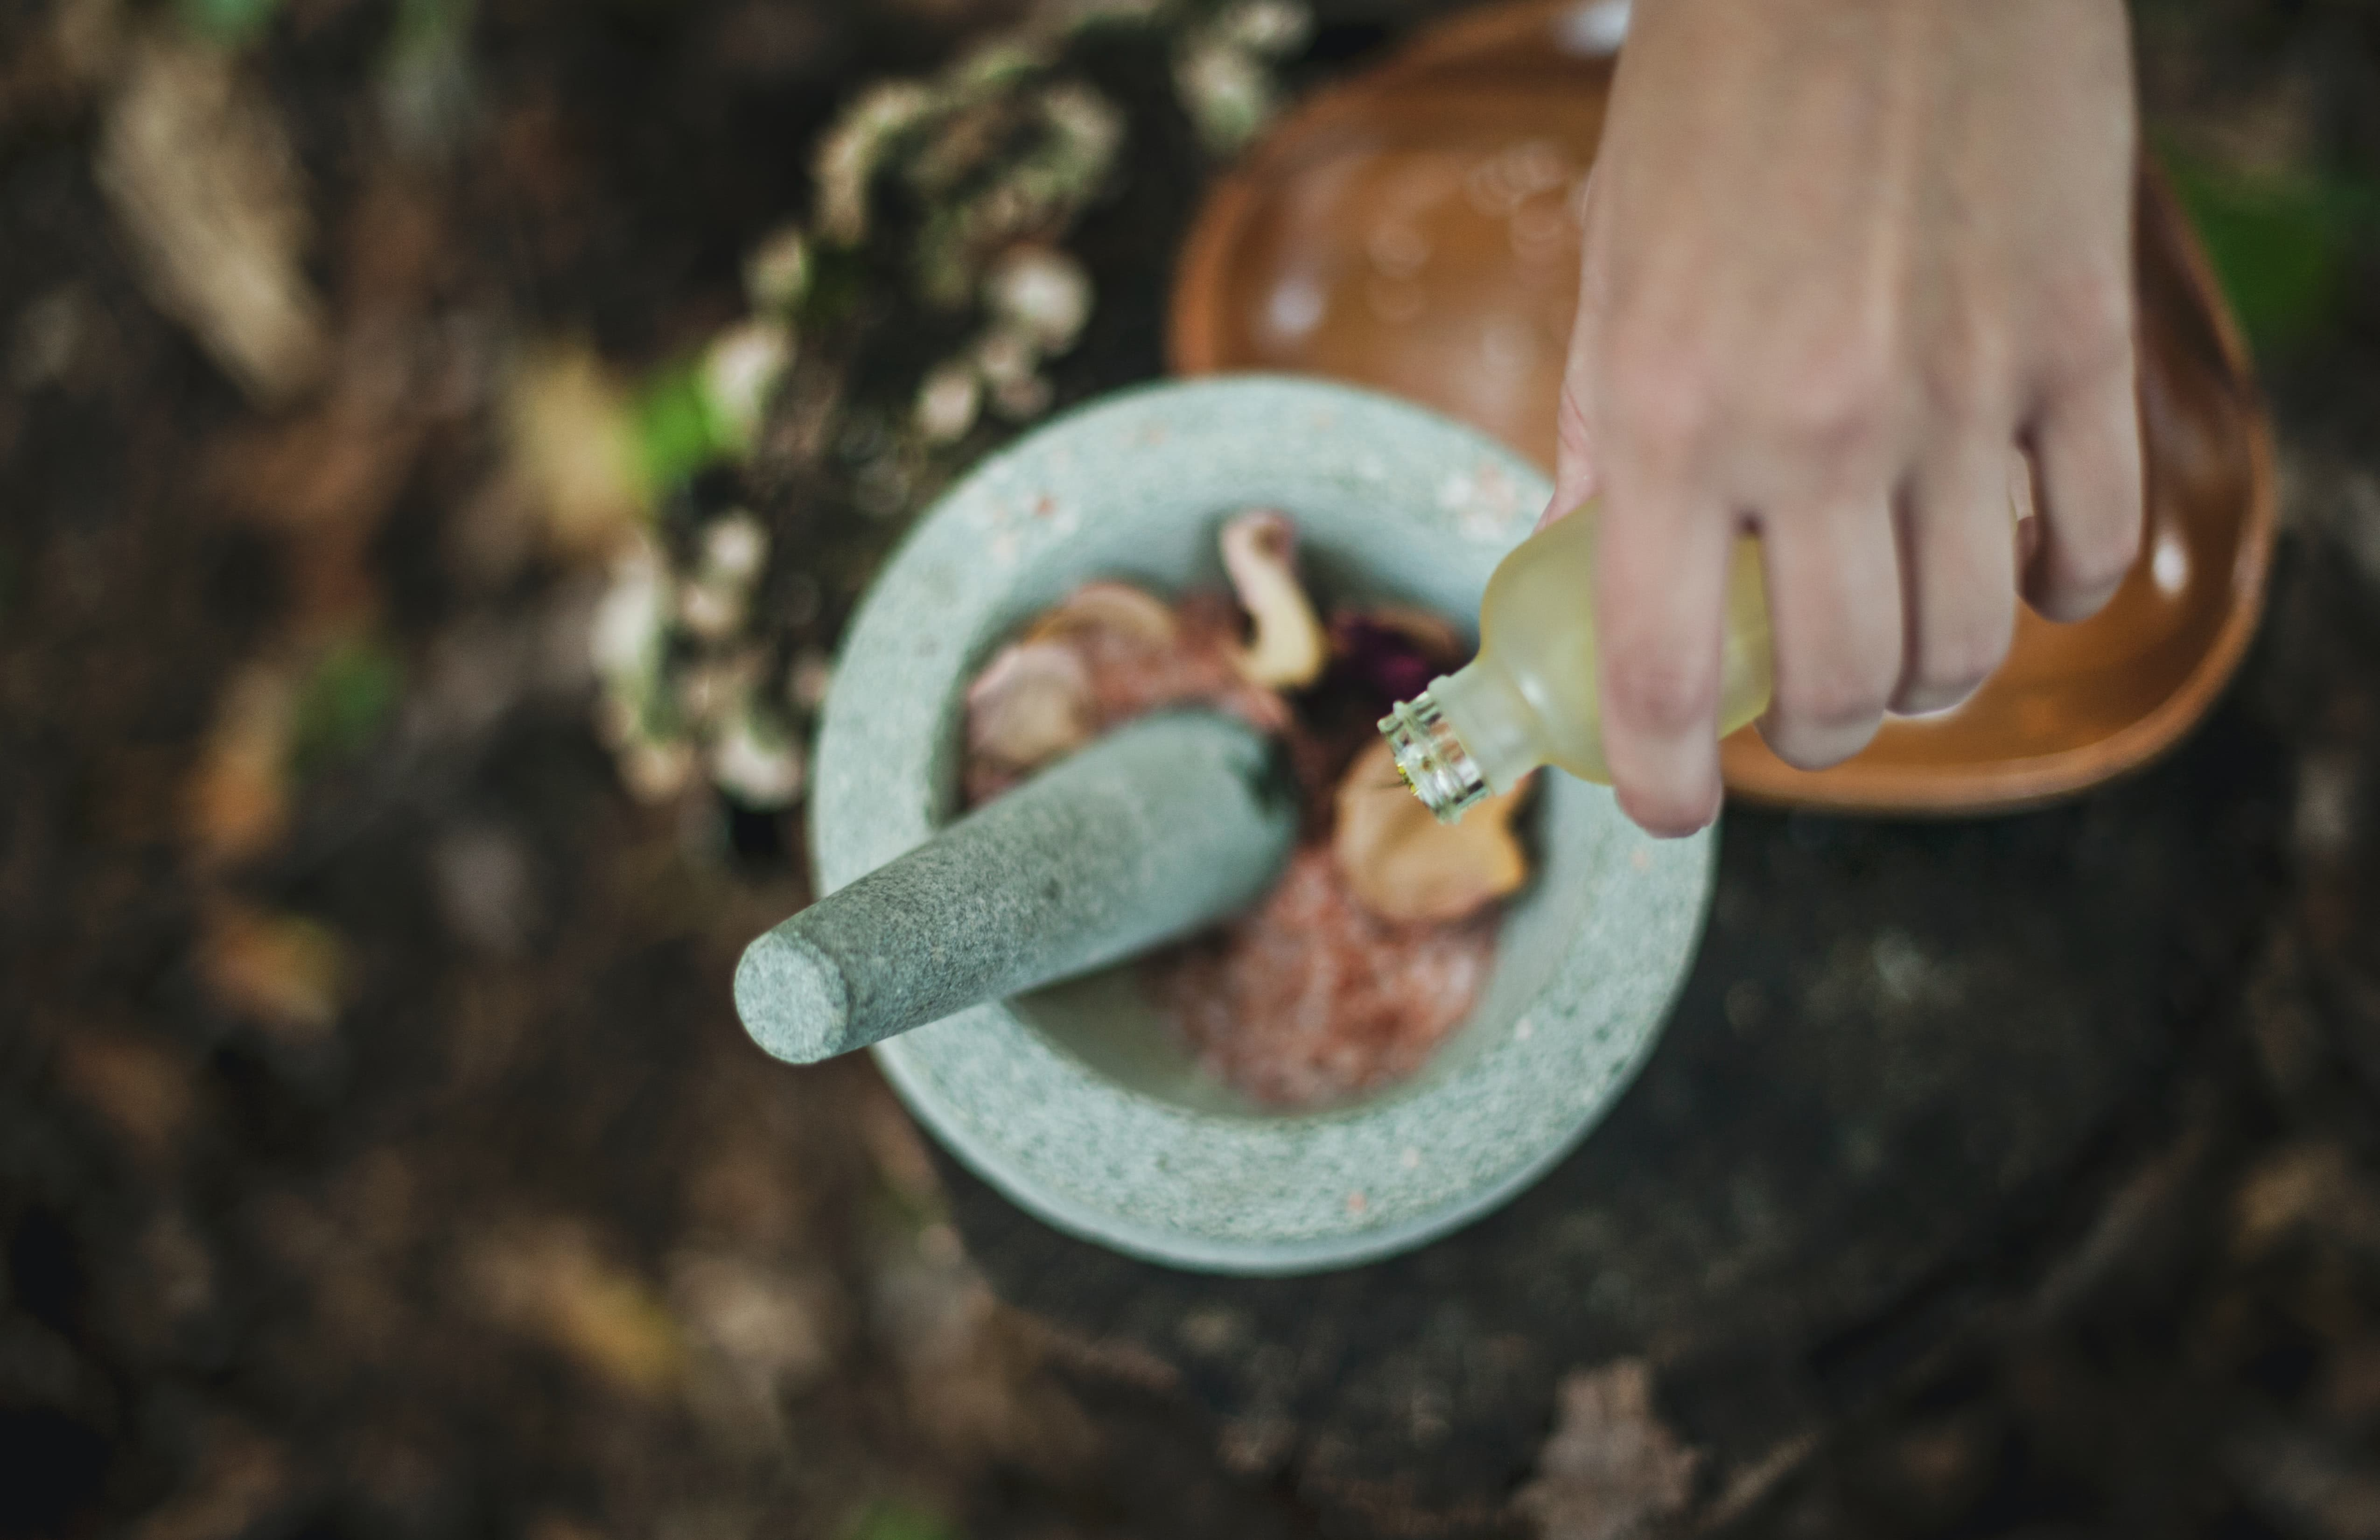 woman's hand pouring essential oils into a mortar and pestle filled with flowers